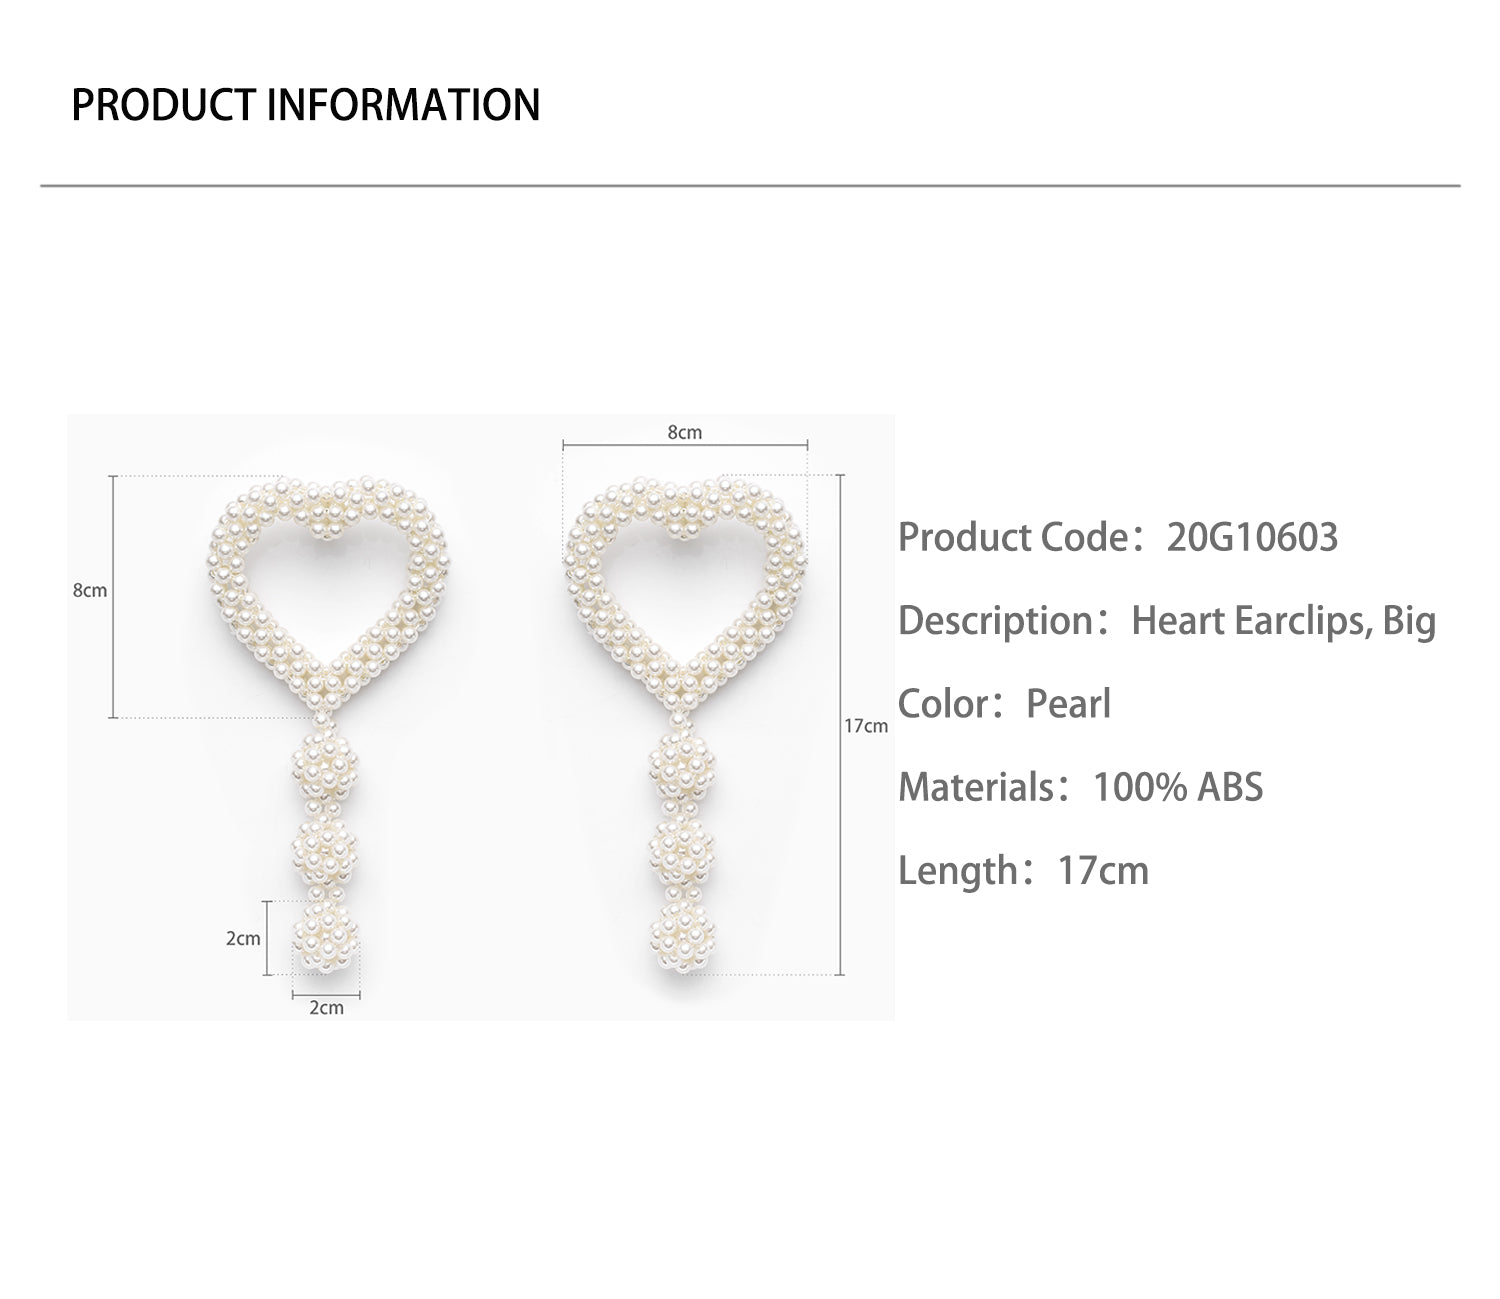 Heart Earclips, Big